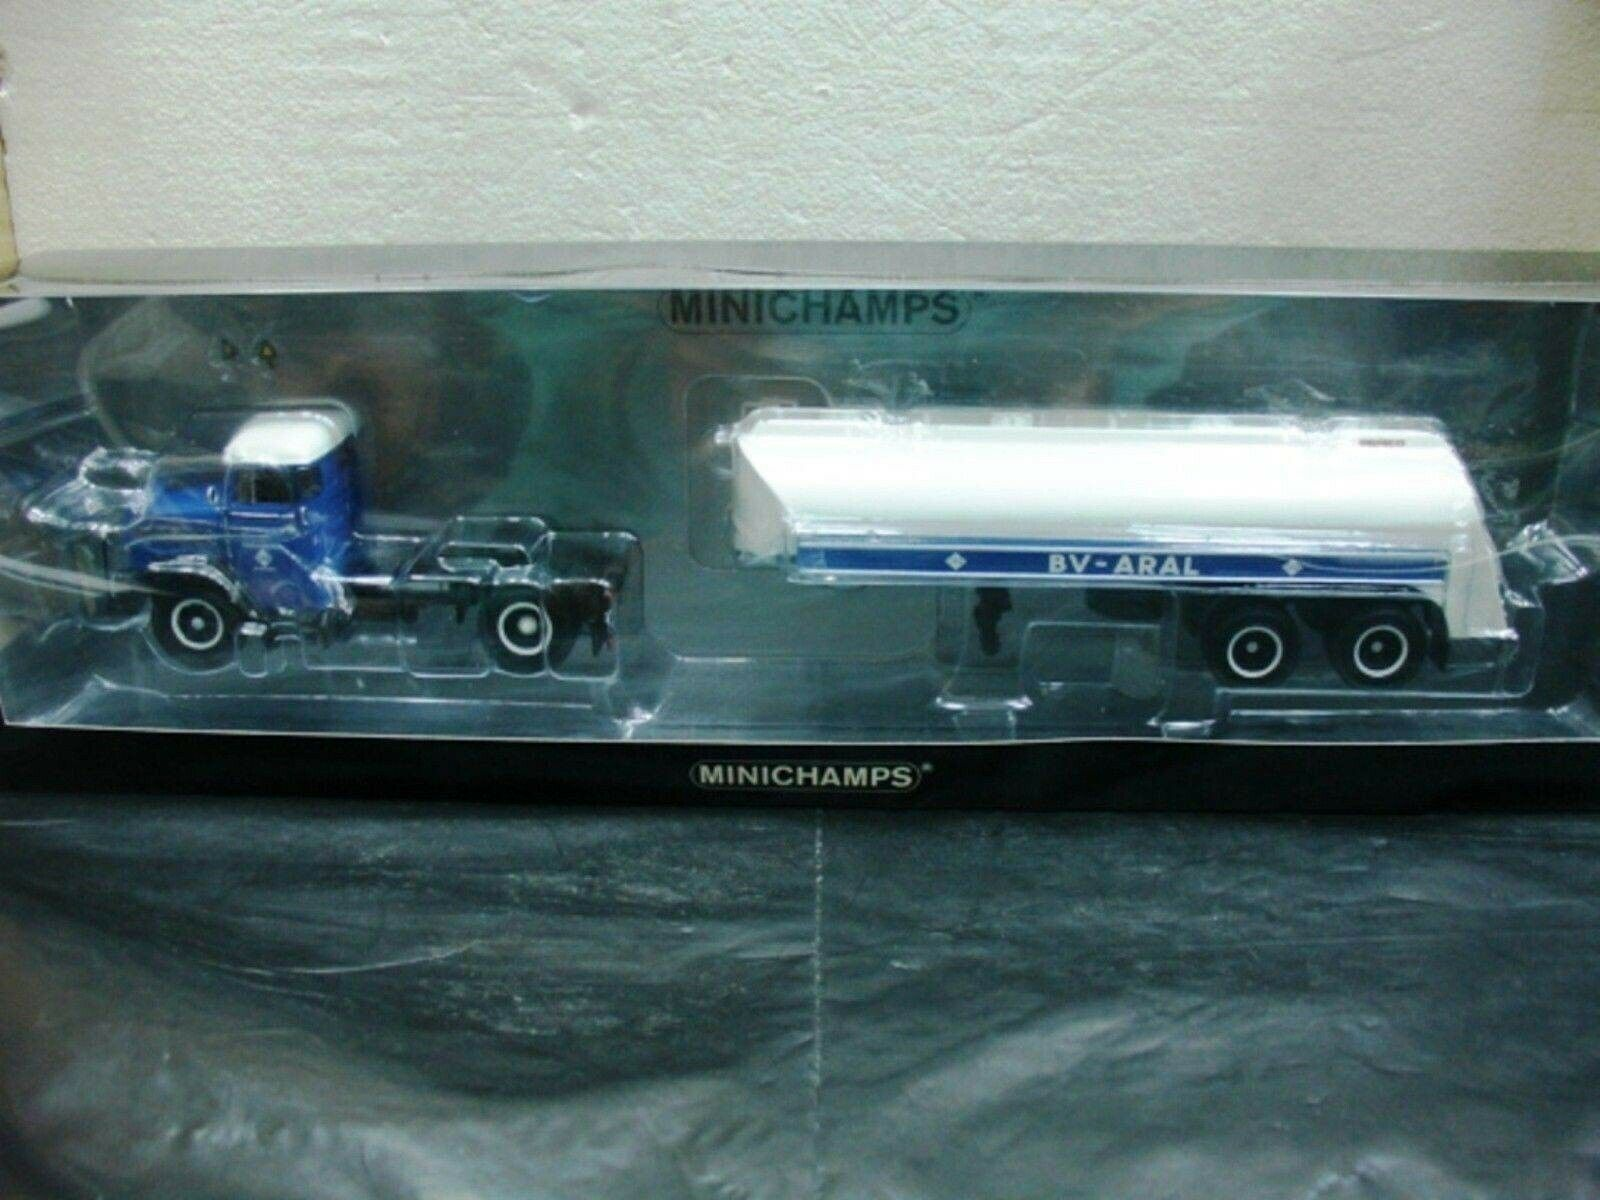 WOW EXTREMELY RARE Man F8 Tanksattelzug Aral 1954 bluee White 1 43 Minichamps-860